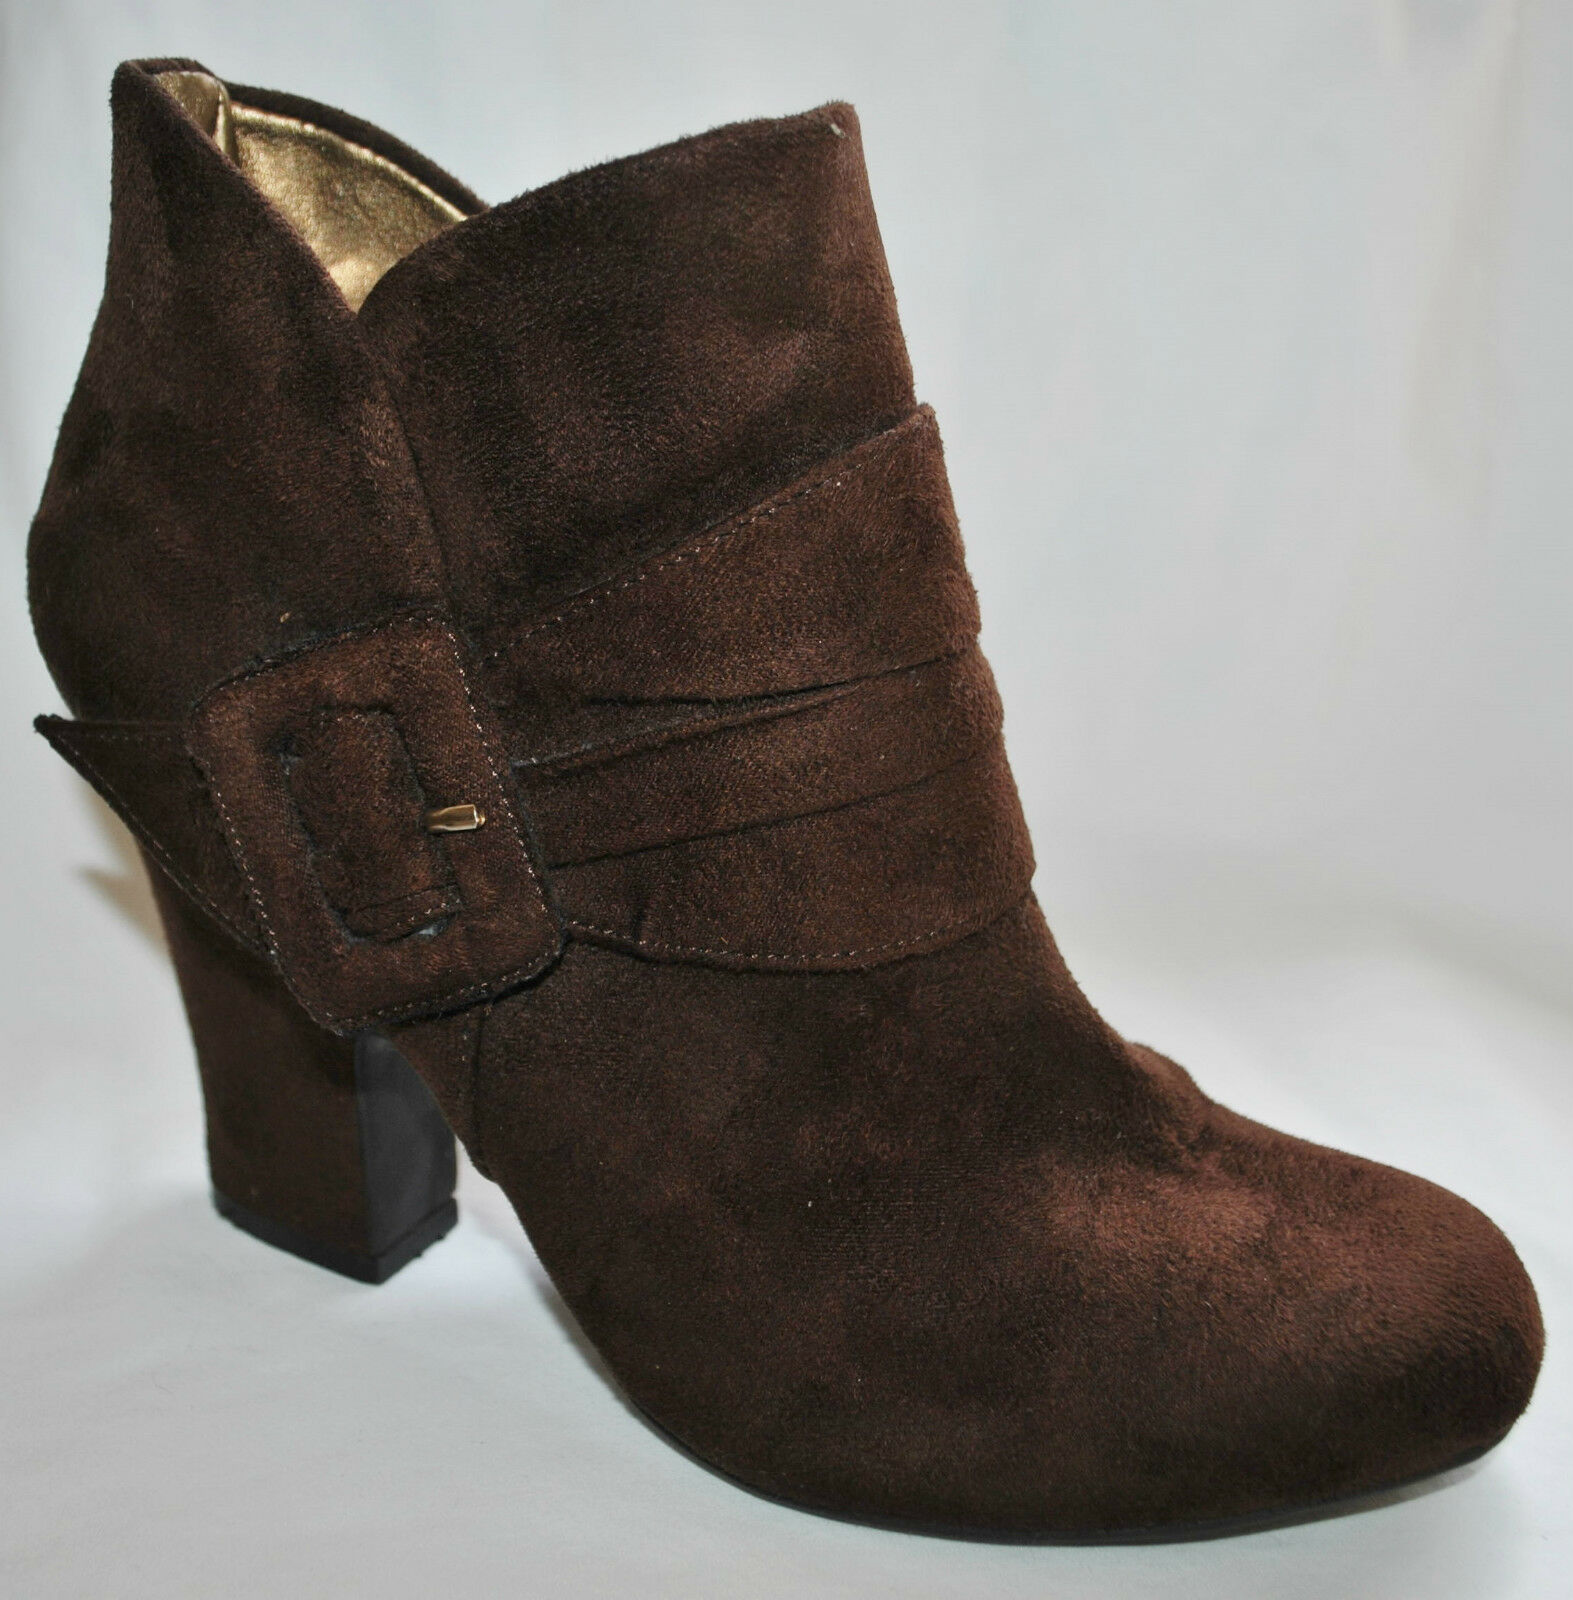 American Eagle CHIC Brown Buckle Bootie Vegan High Heeled Ankle Bootie Buckle Boot Shoe Sz 7.5 09556a